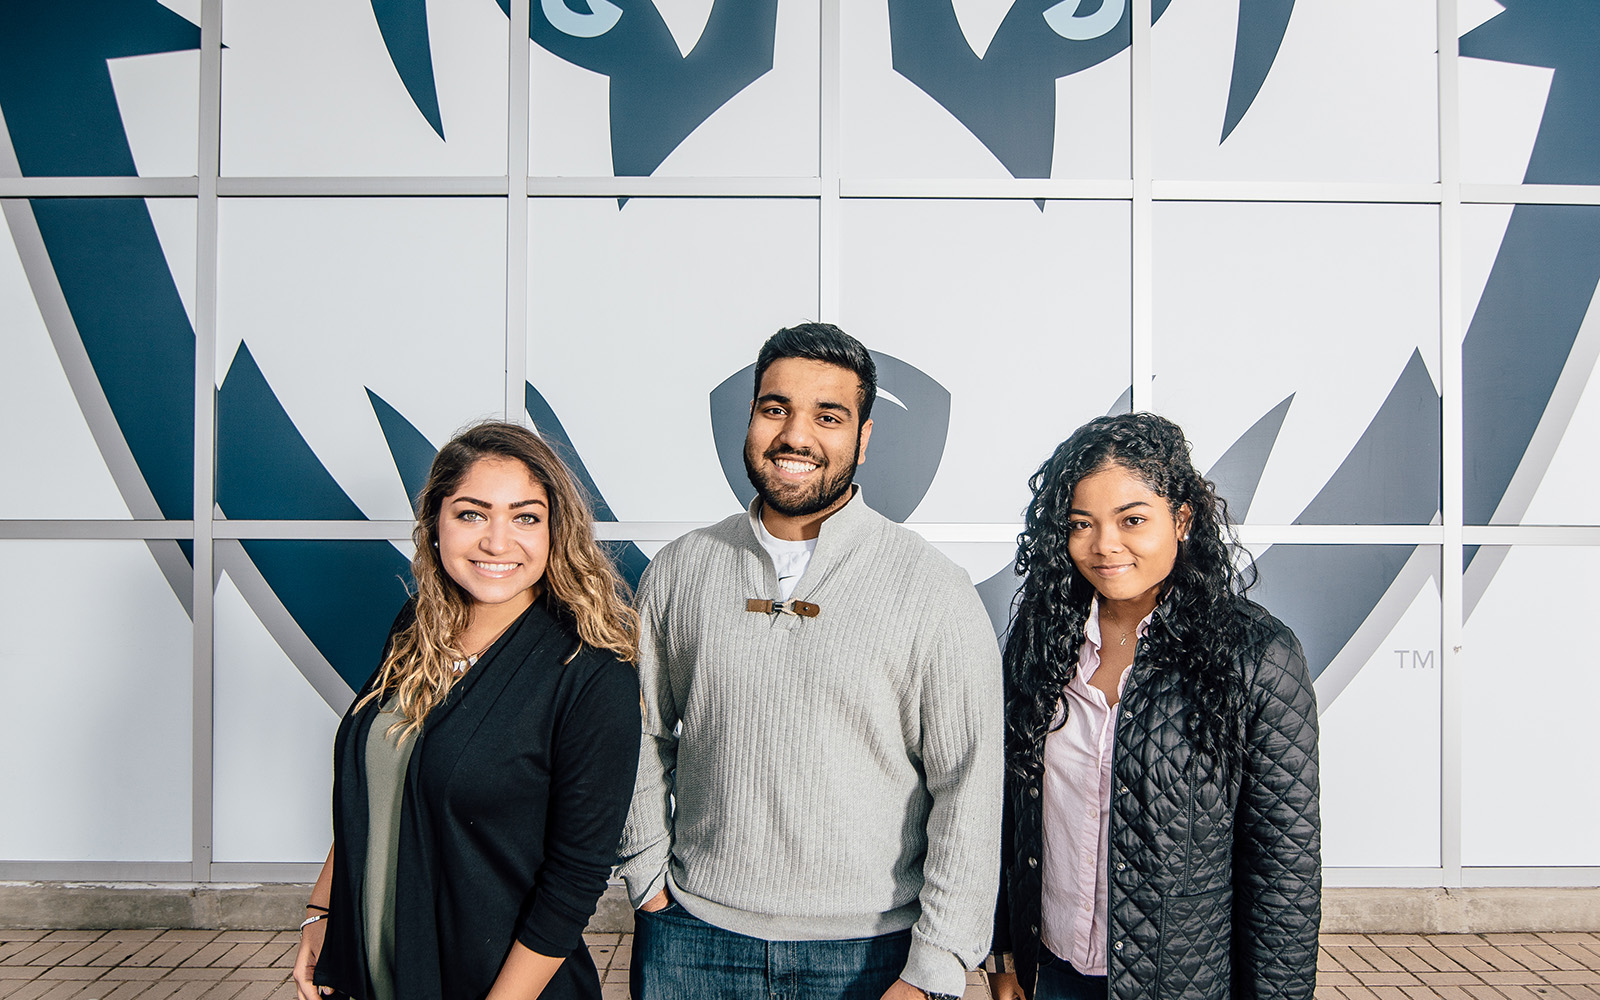 Sophomores Jessenia Nieves, Joel Thomas and Zuanny Araujo all chose to live in the Business Connections Learning Community (BCLC) at UConn, which gives them numerous opportunities to jump-start their careers. (Nathan Oldham/UConn School of Business)